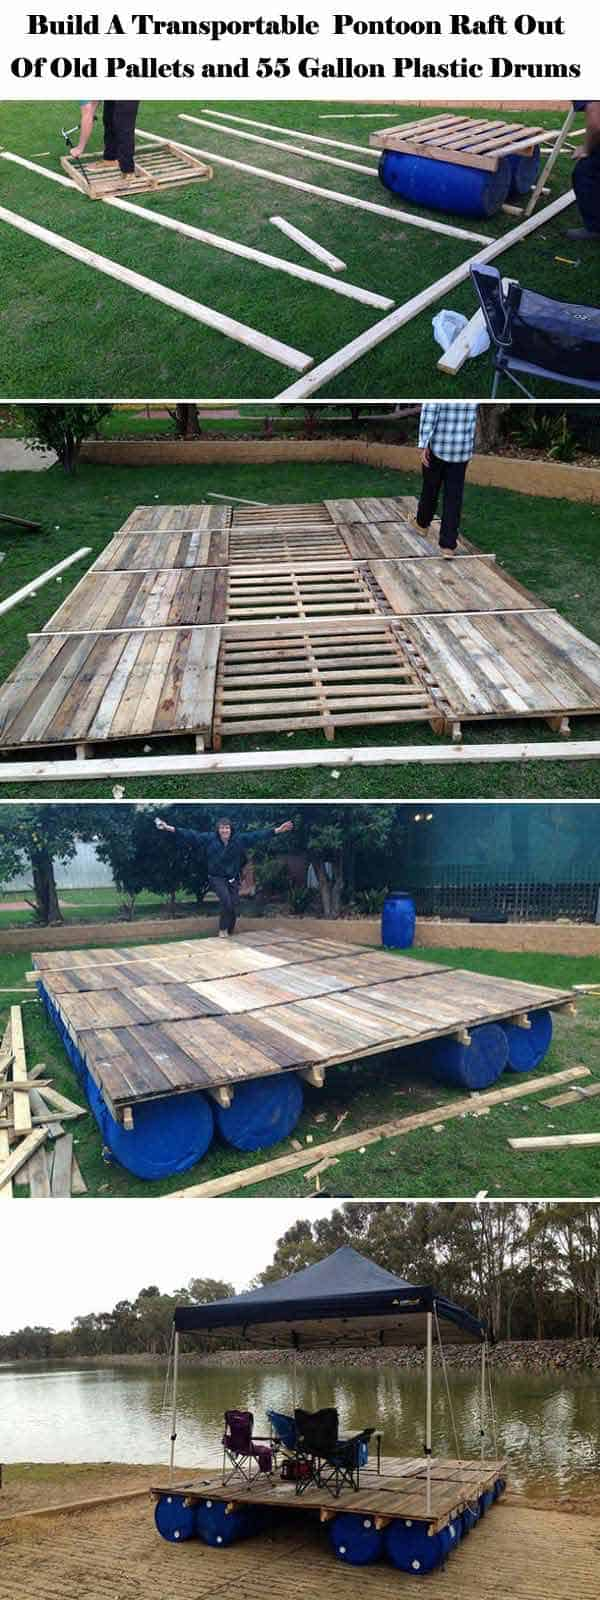 6 Build Fun Pontoon Raft With Old Pallets And Gallon Plastic Drums